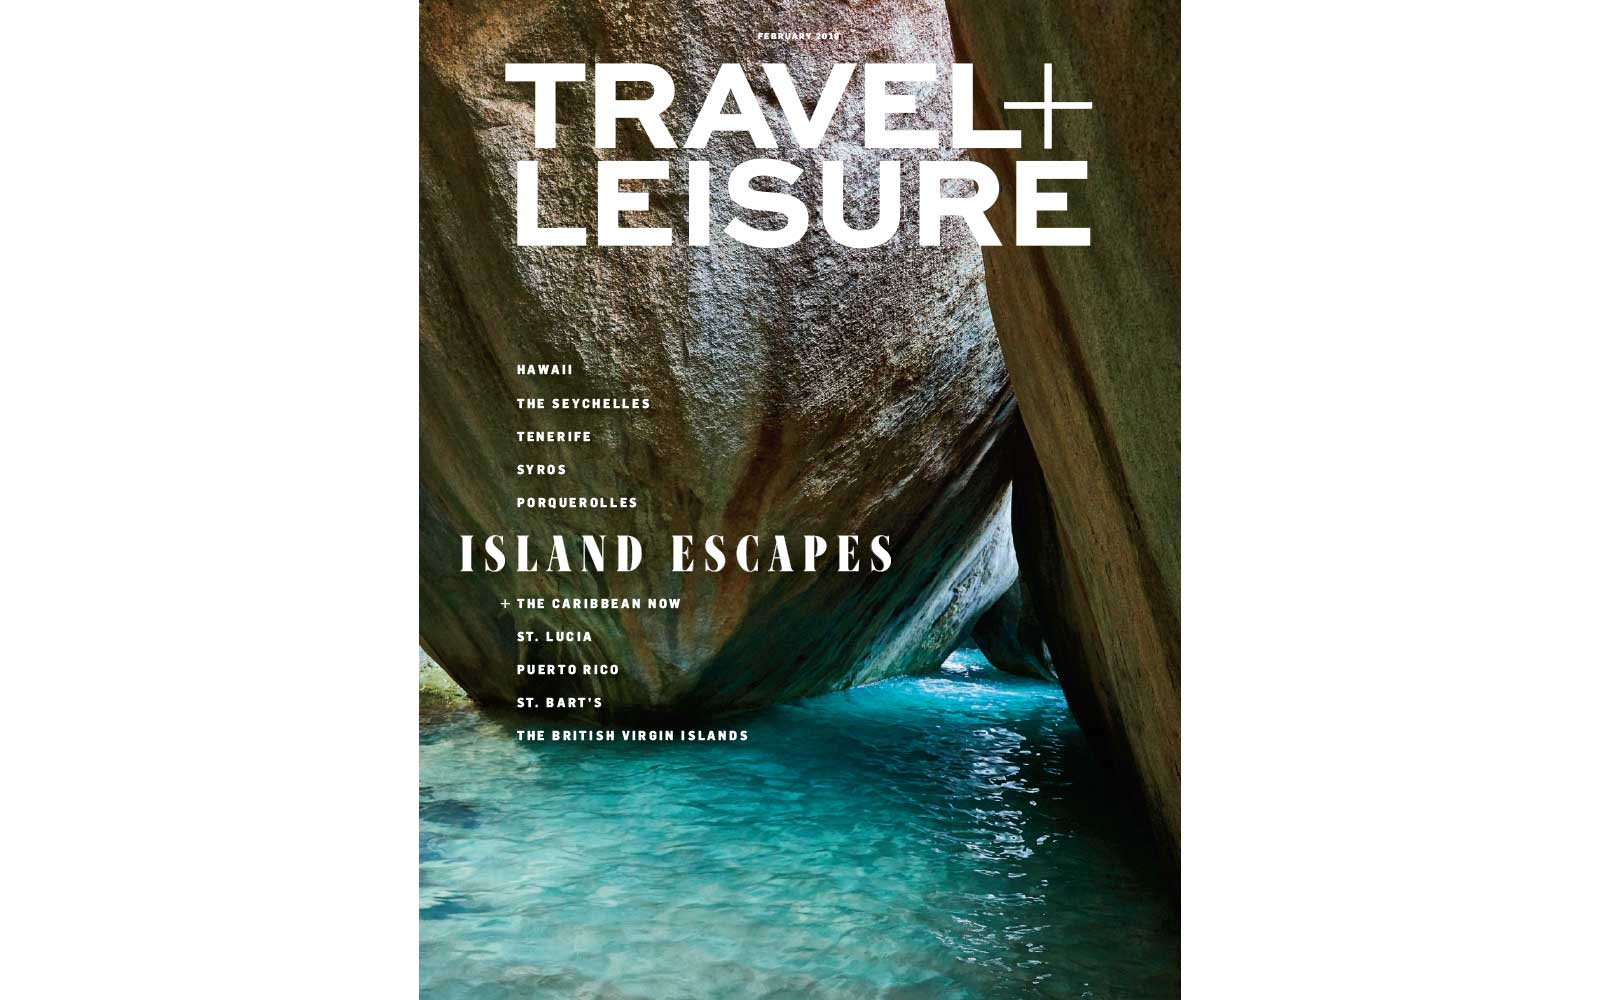 Travel + Leisure February 2019 cover